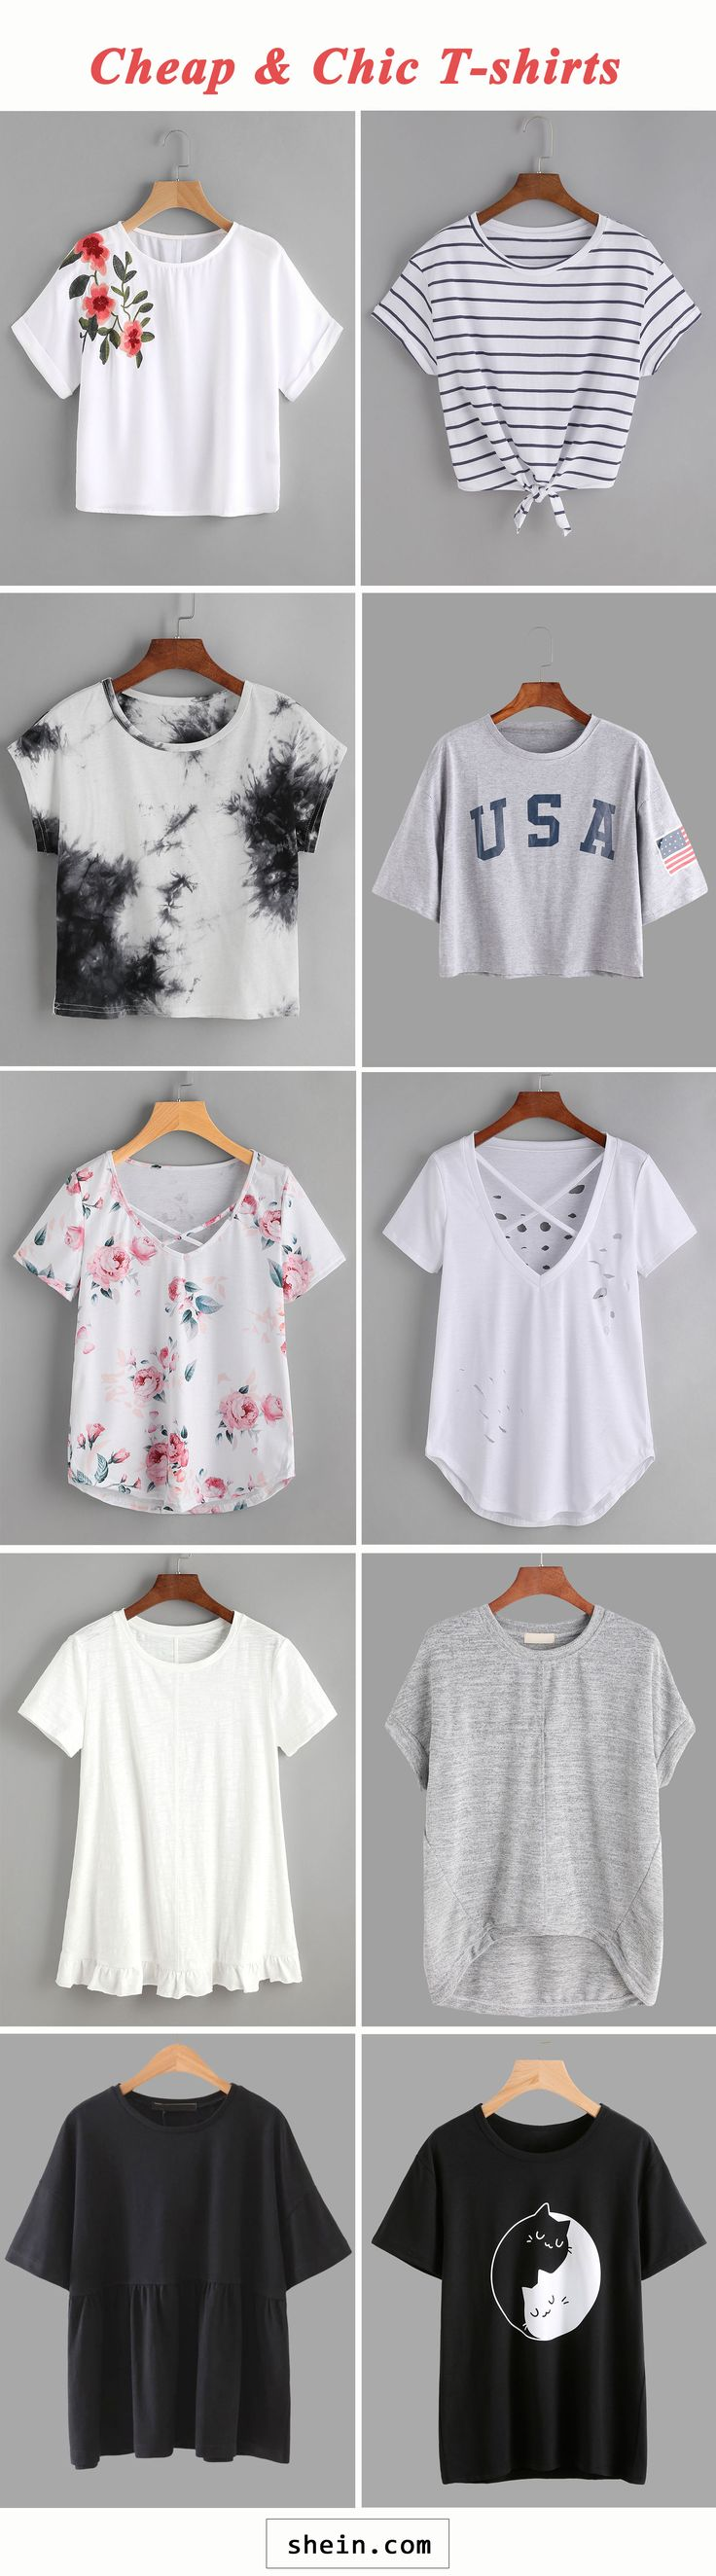 Cheap and chic T-shirts